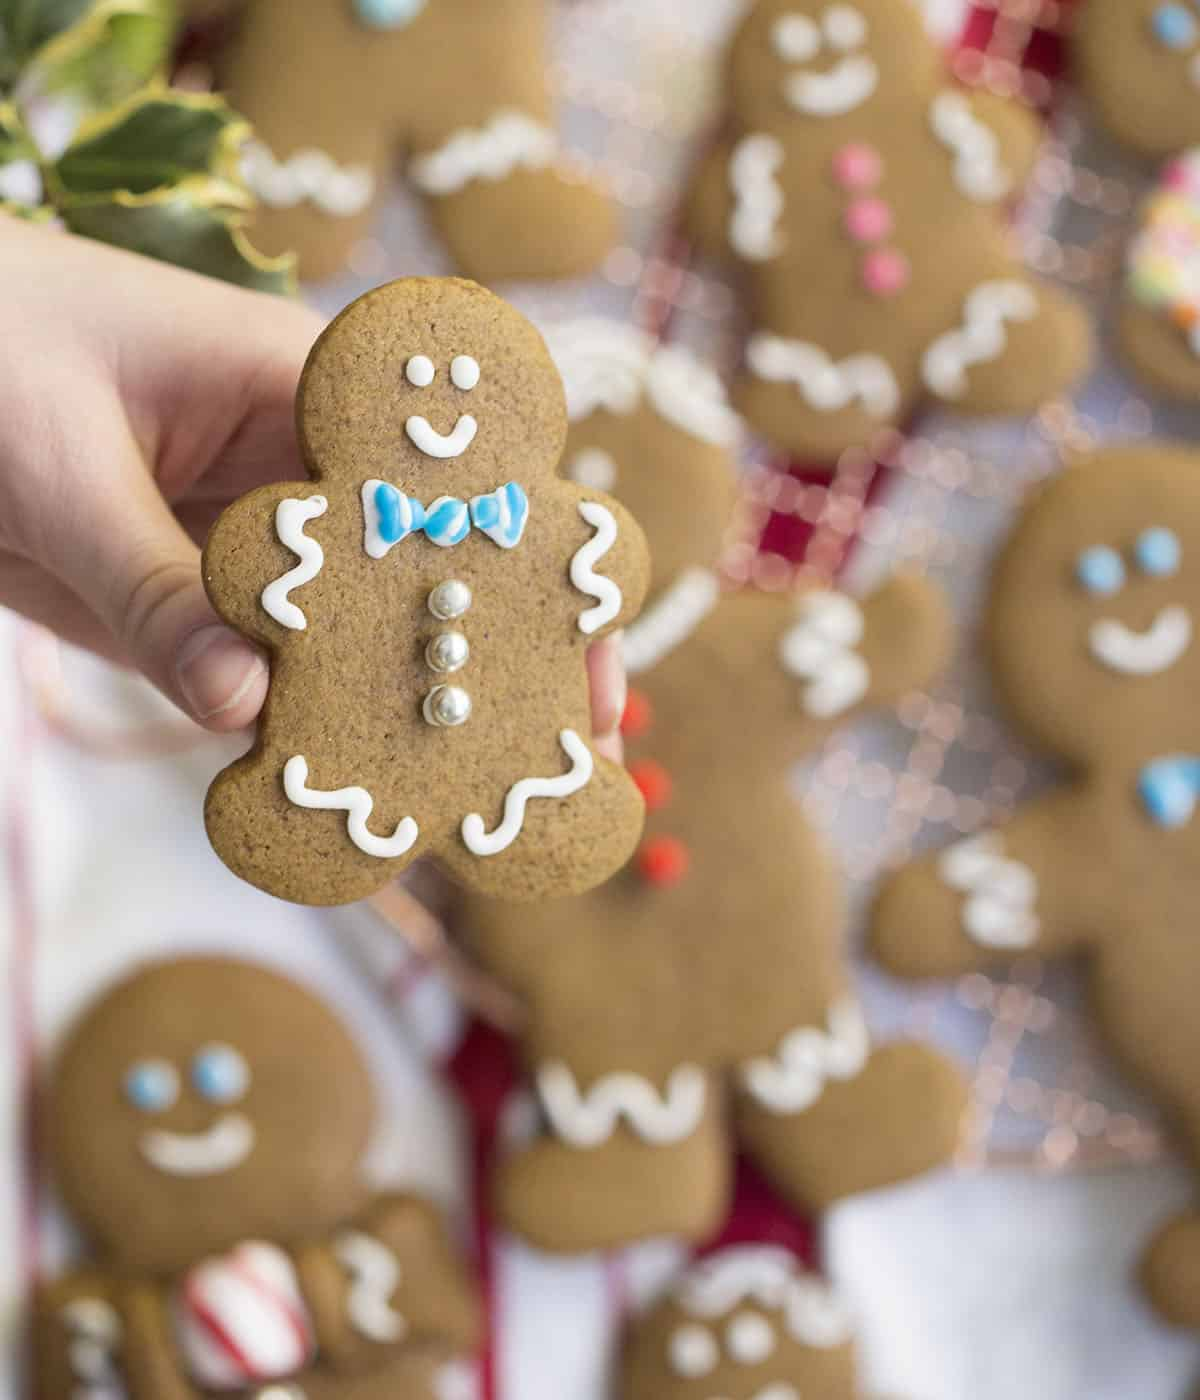 A gingerbread cookie held in the air.